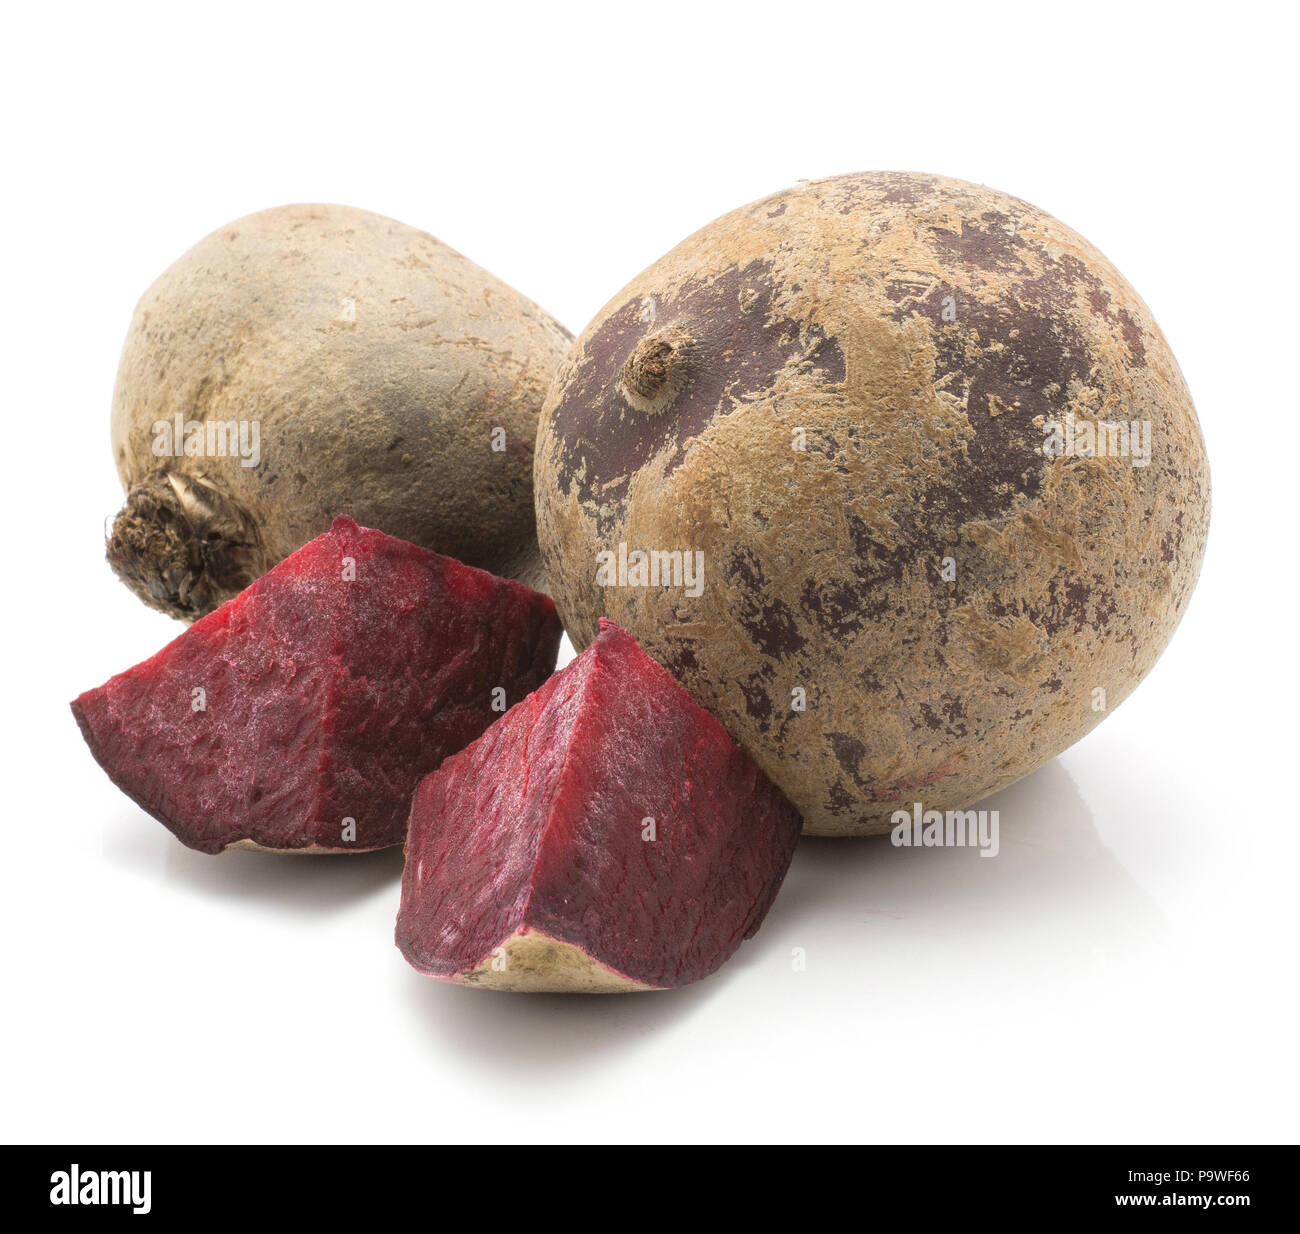 Beetroot (raw red beet) two bulbs and two pieces isolated on white background - Stock Image